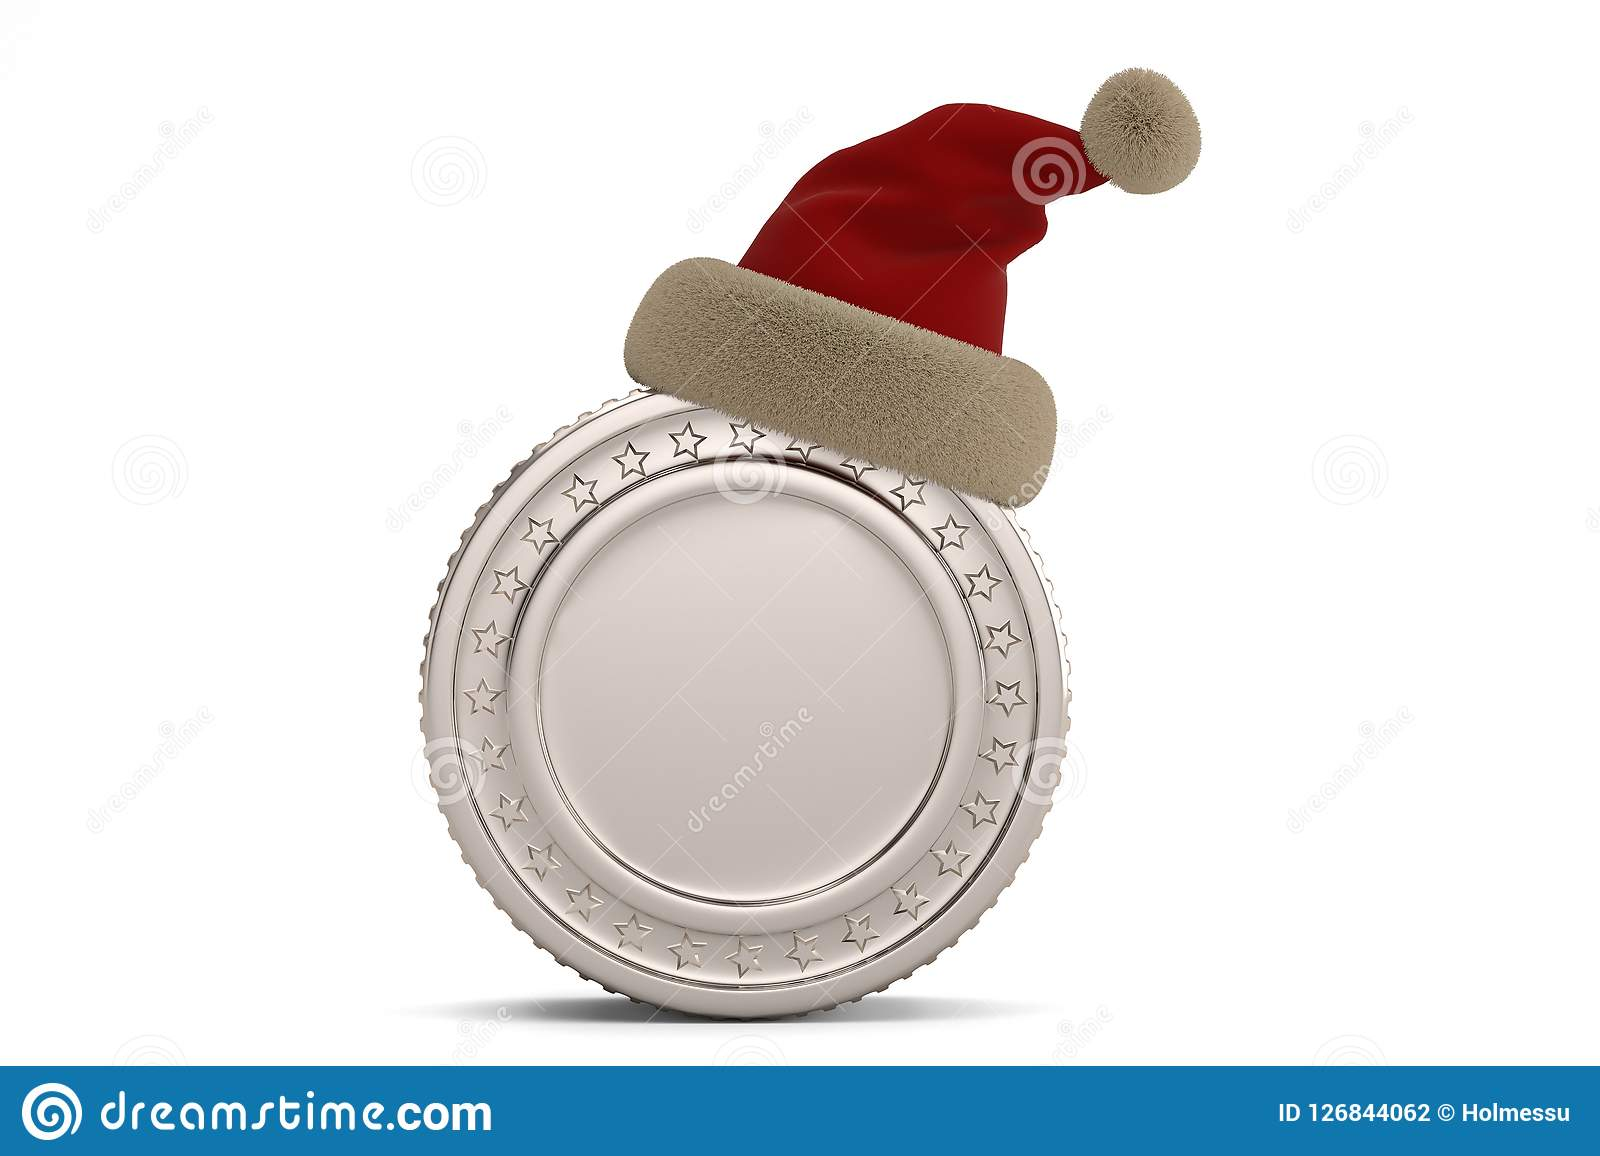 b7698b69a53eb Silver Coin With Santa Hat Isolated On White Background.3D Illus ...